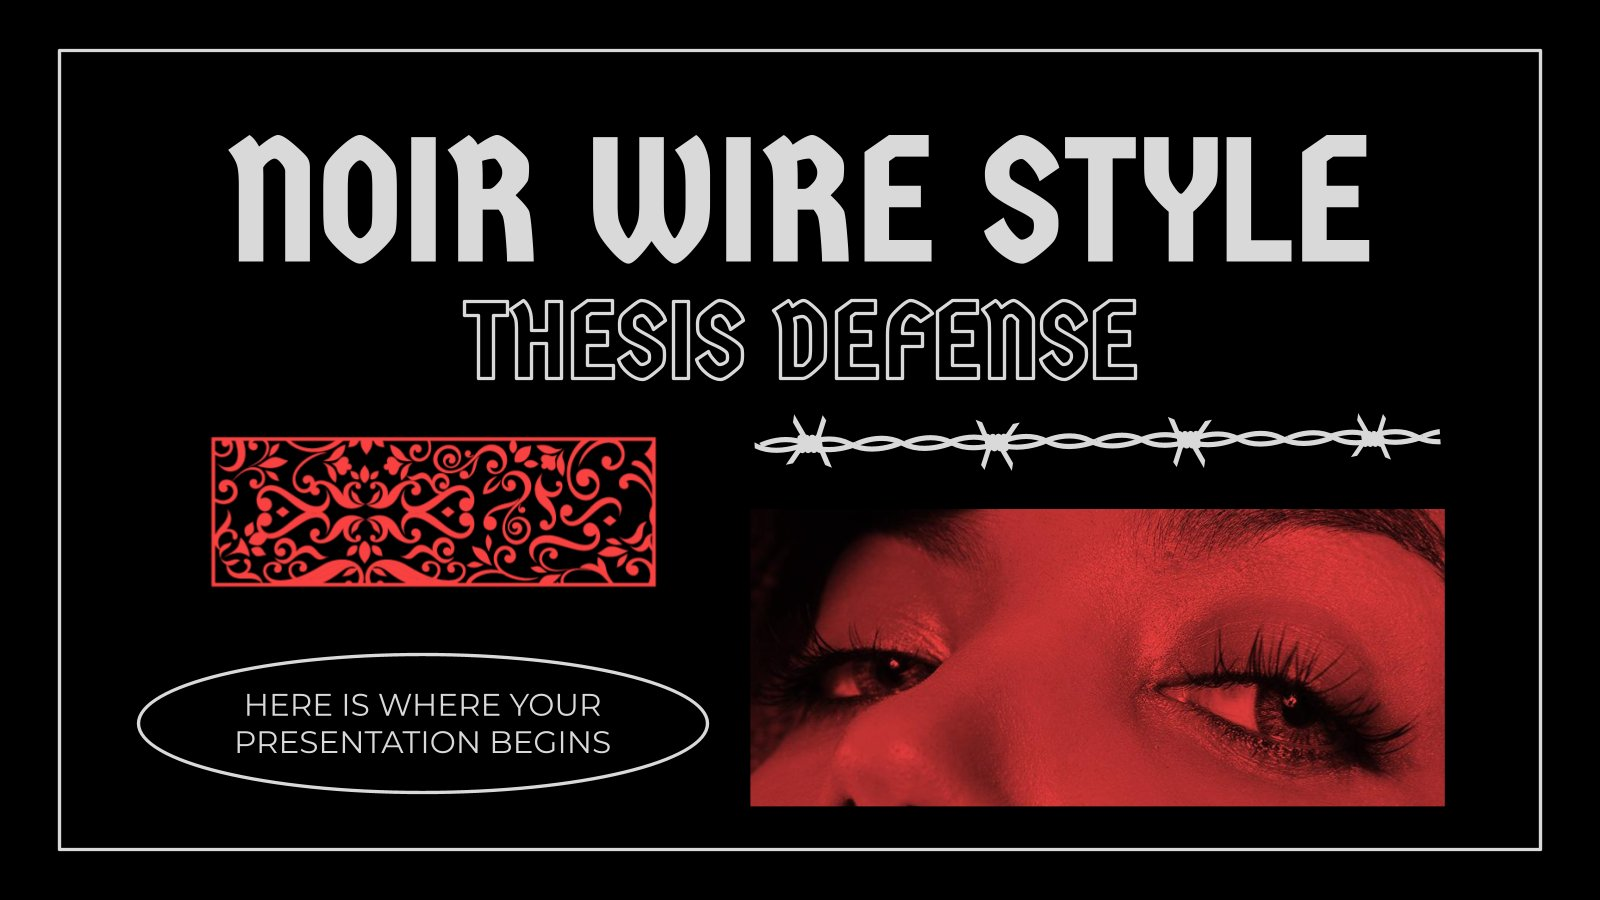 Noir Wire Style Thesis Defense presentation template